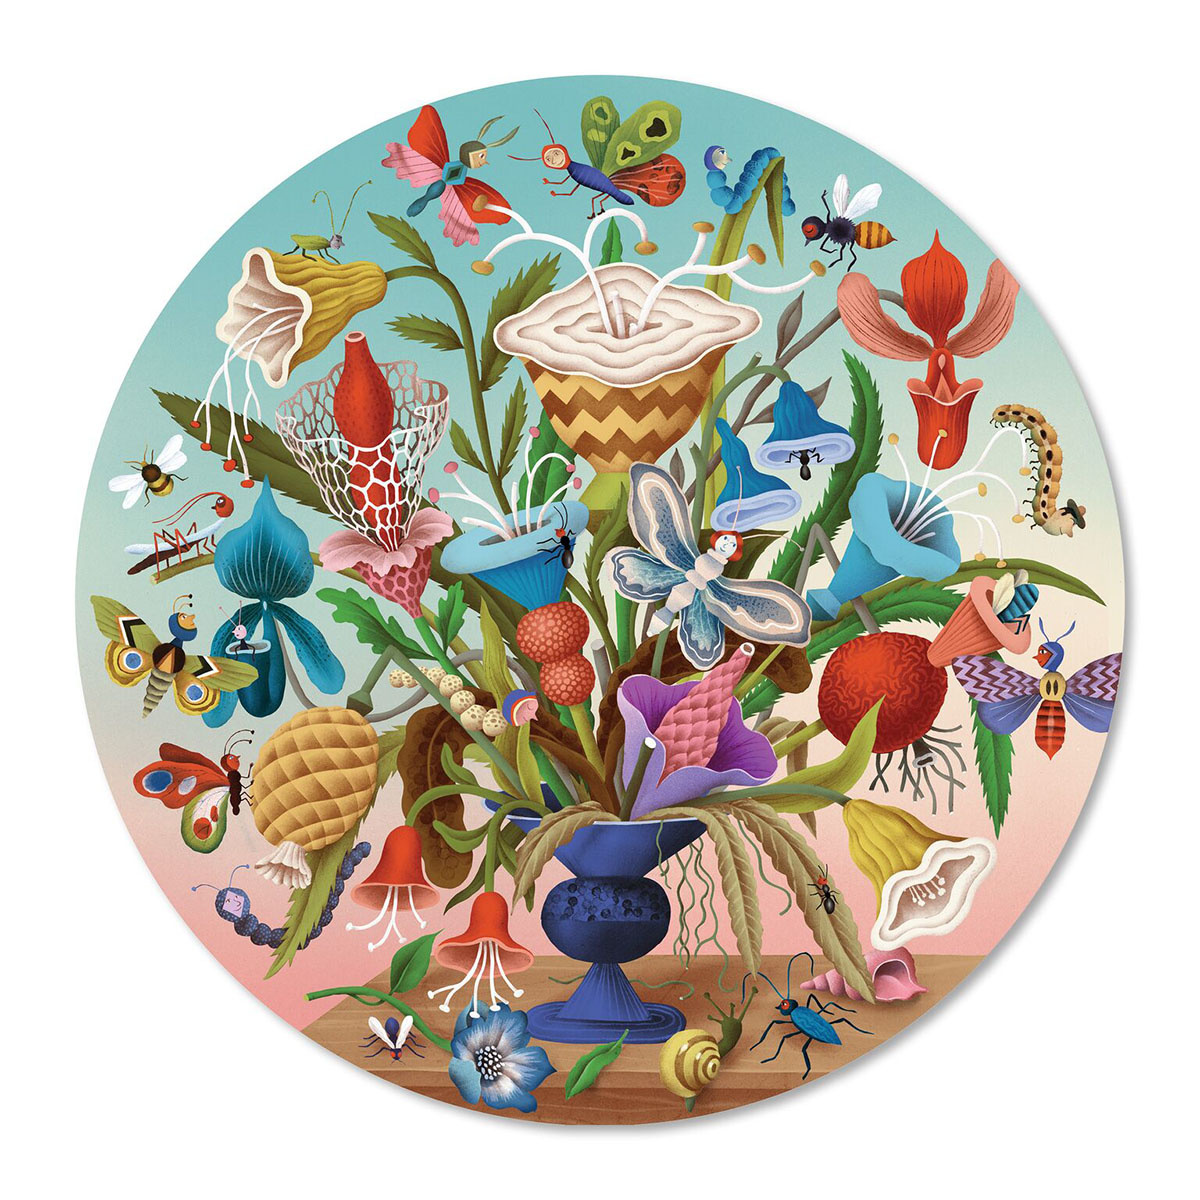 Crazy Bug Bouquet Puzzle (500 Piece Round Jigsaw)